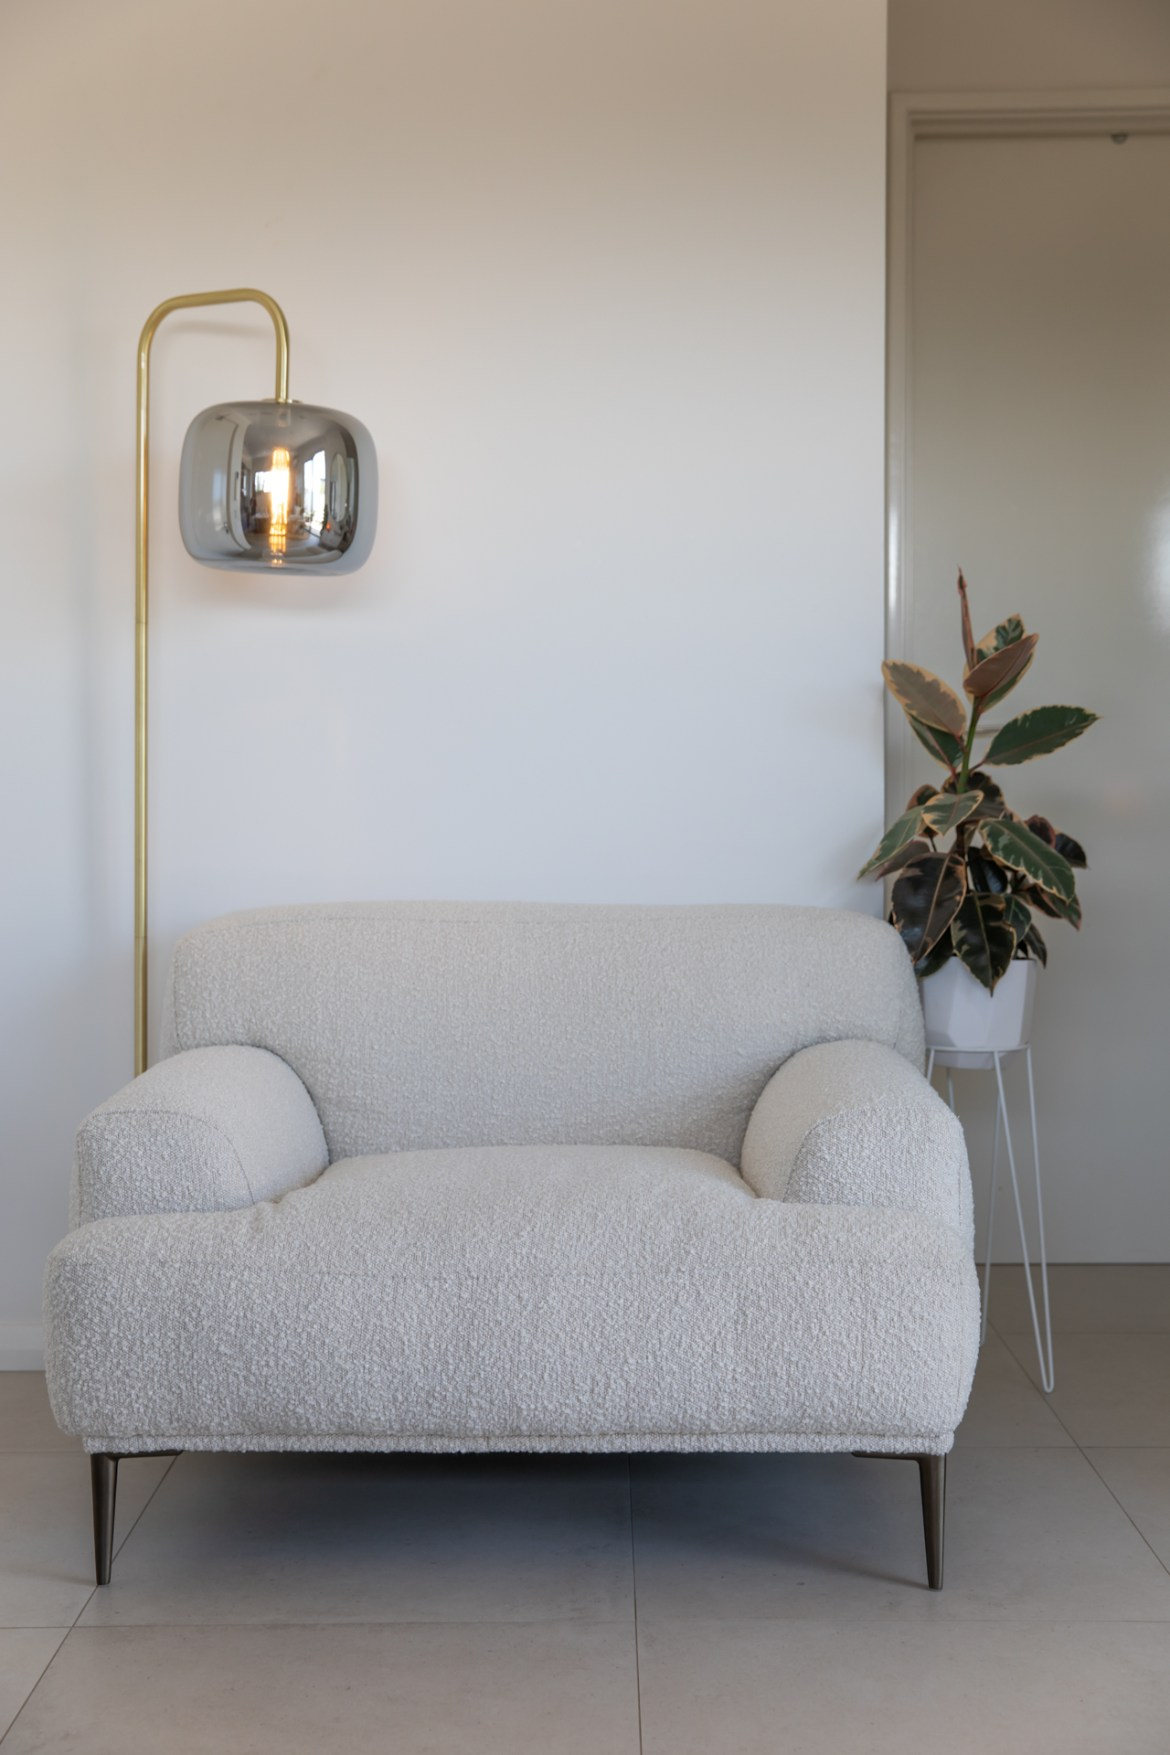 styling the Brosa Seta armchair with a modernist floor lamp and rubber plant for the perfect minimalist home decor